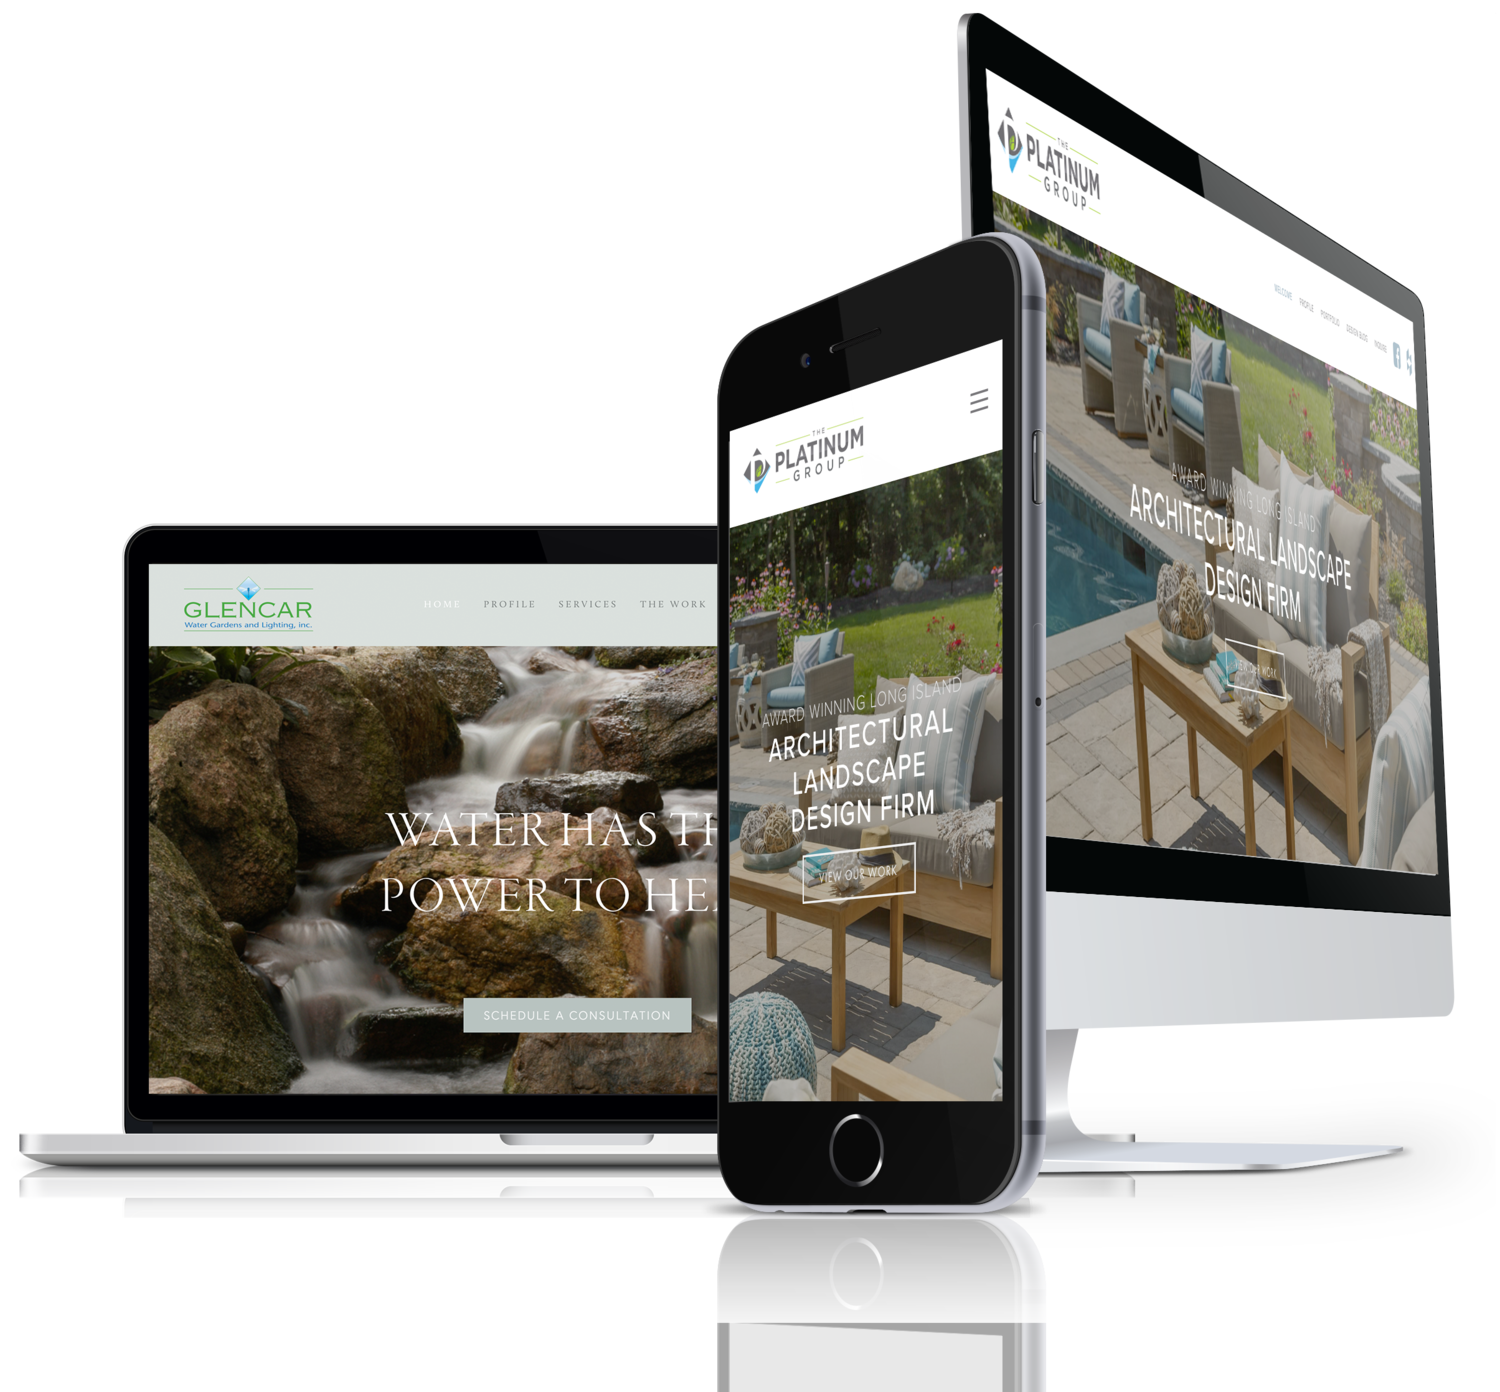 Top contractor website design in Illinois, including Chicago IL